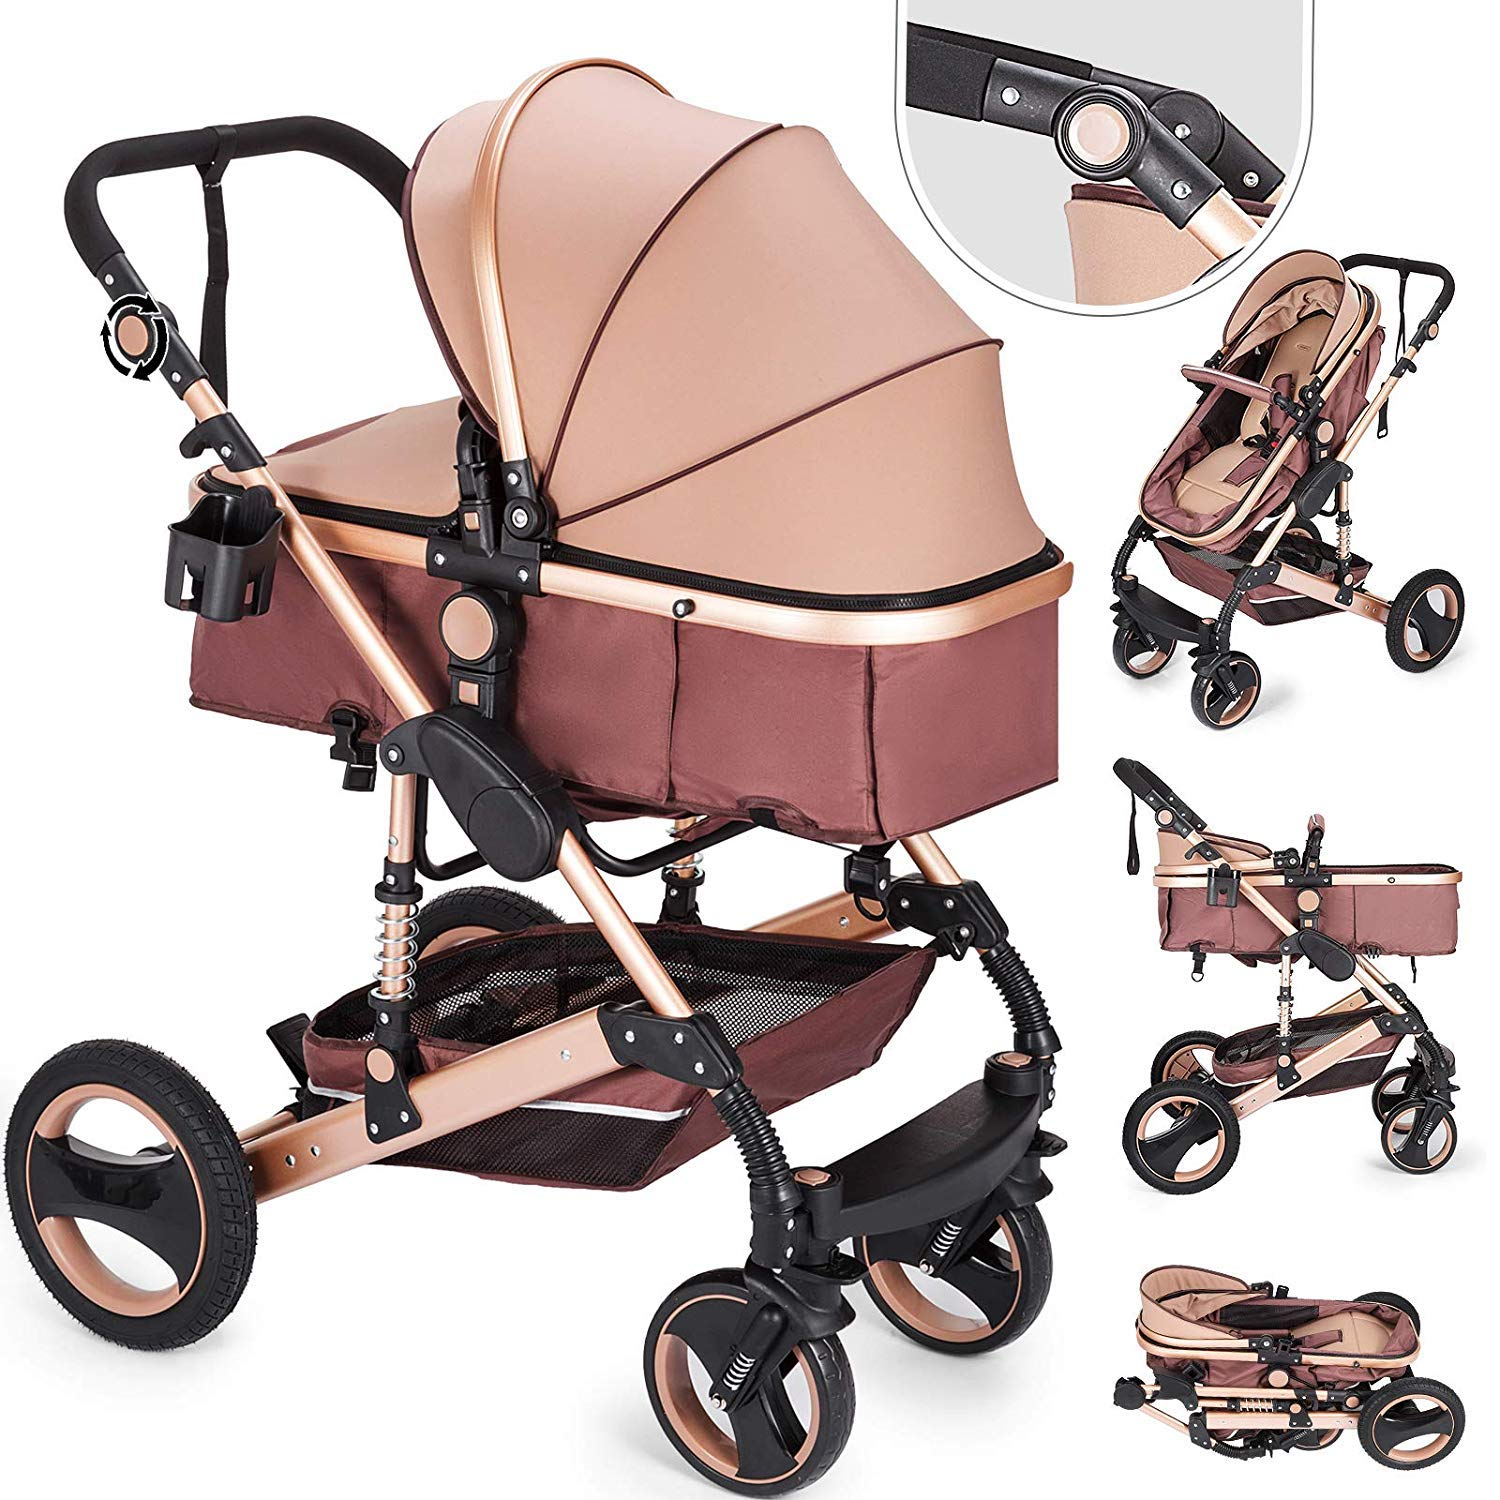 Happybuy 2 in 1 Portable Baby Stroller Anti-Shock Springs Foldable Luxury Baby Stroller Adjustable High View Pram Travel System Infant Carriage Pushchair (2IN1)